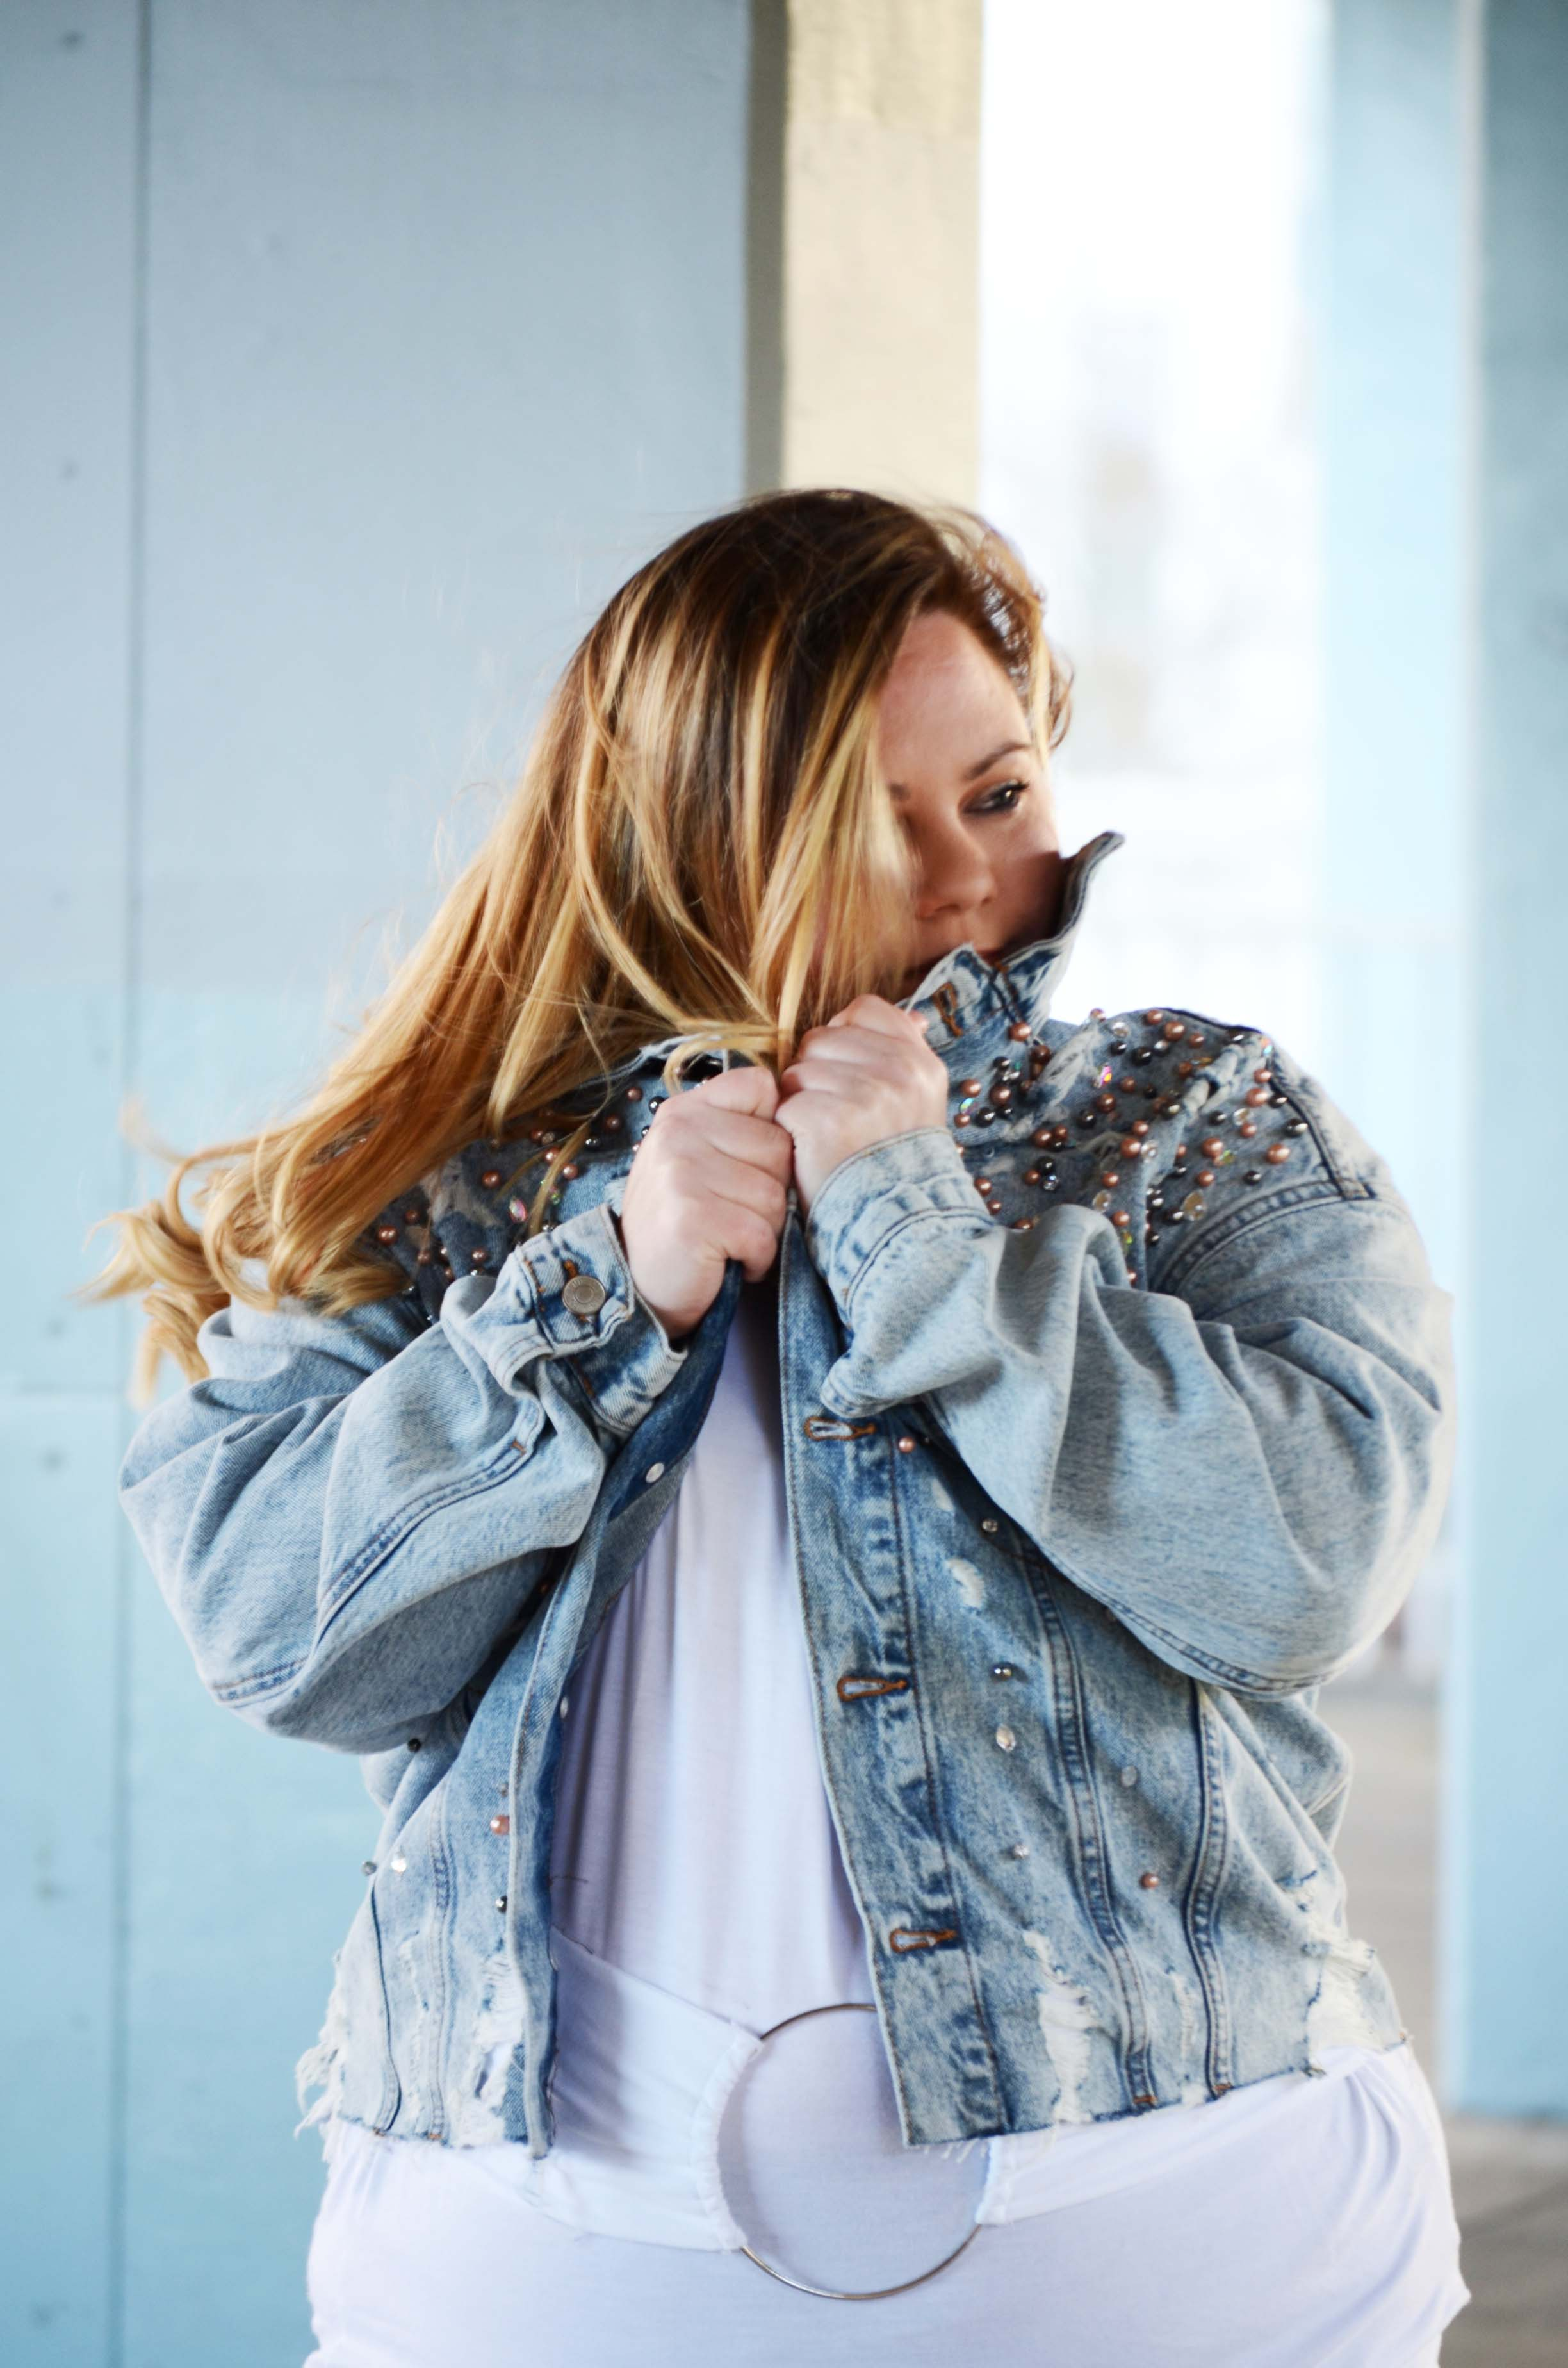 Blonde hair and denim jacket